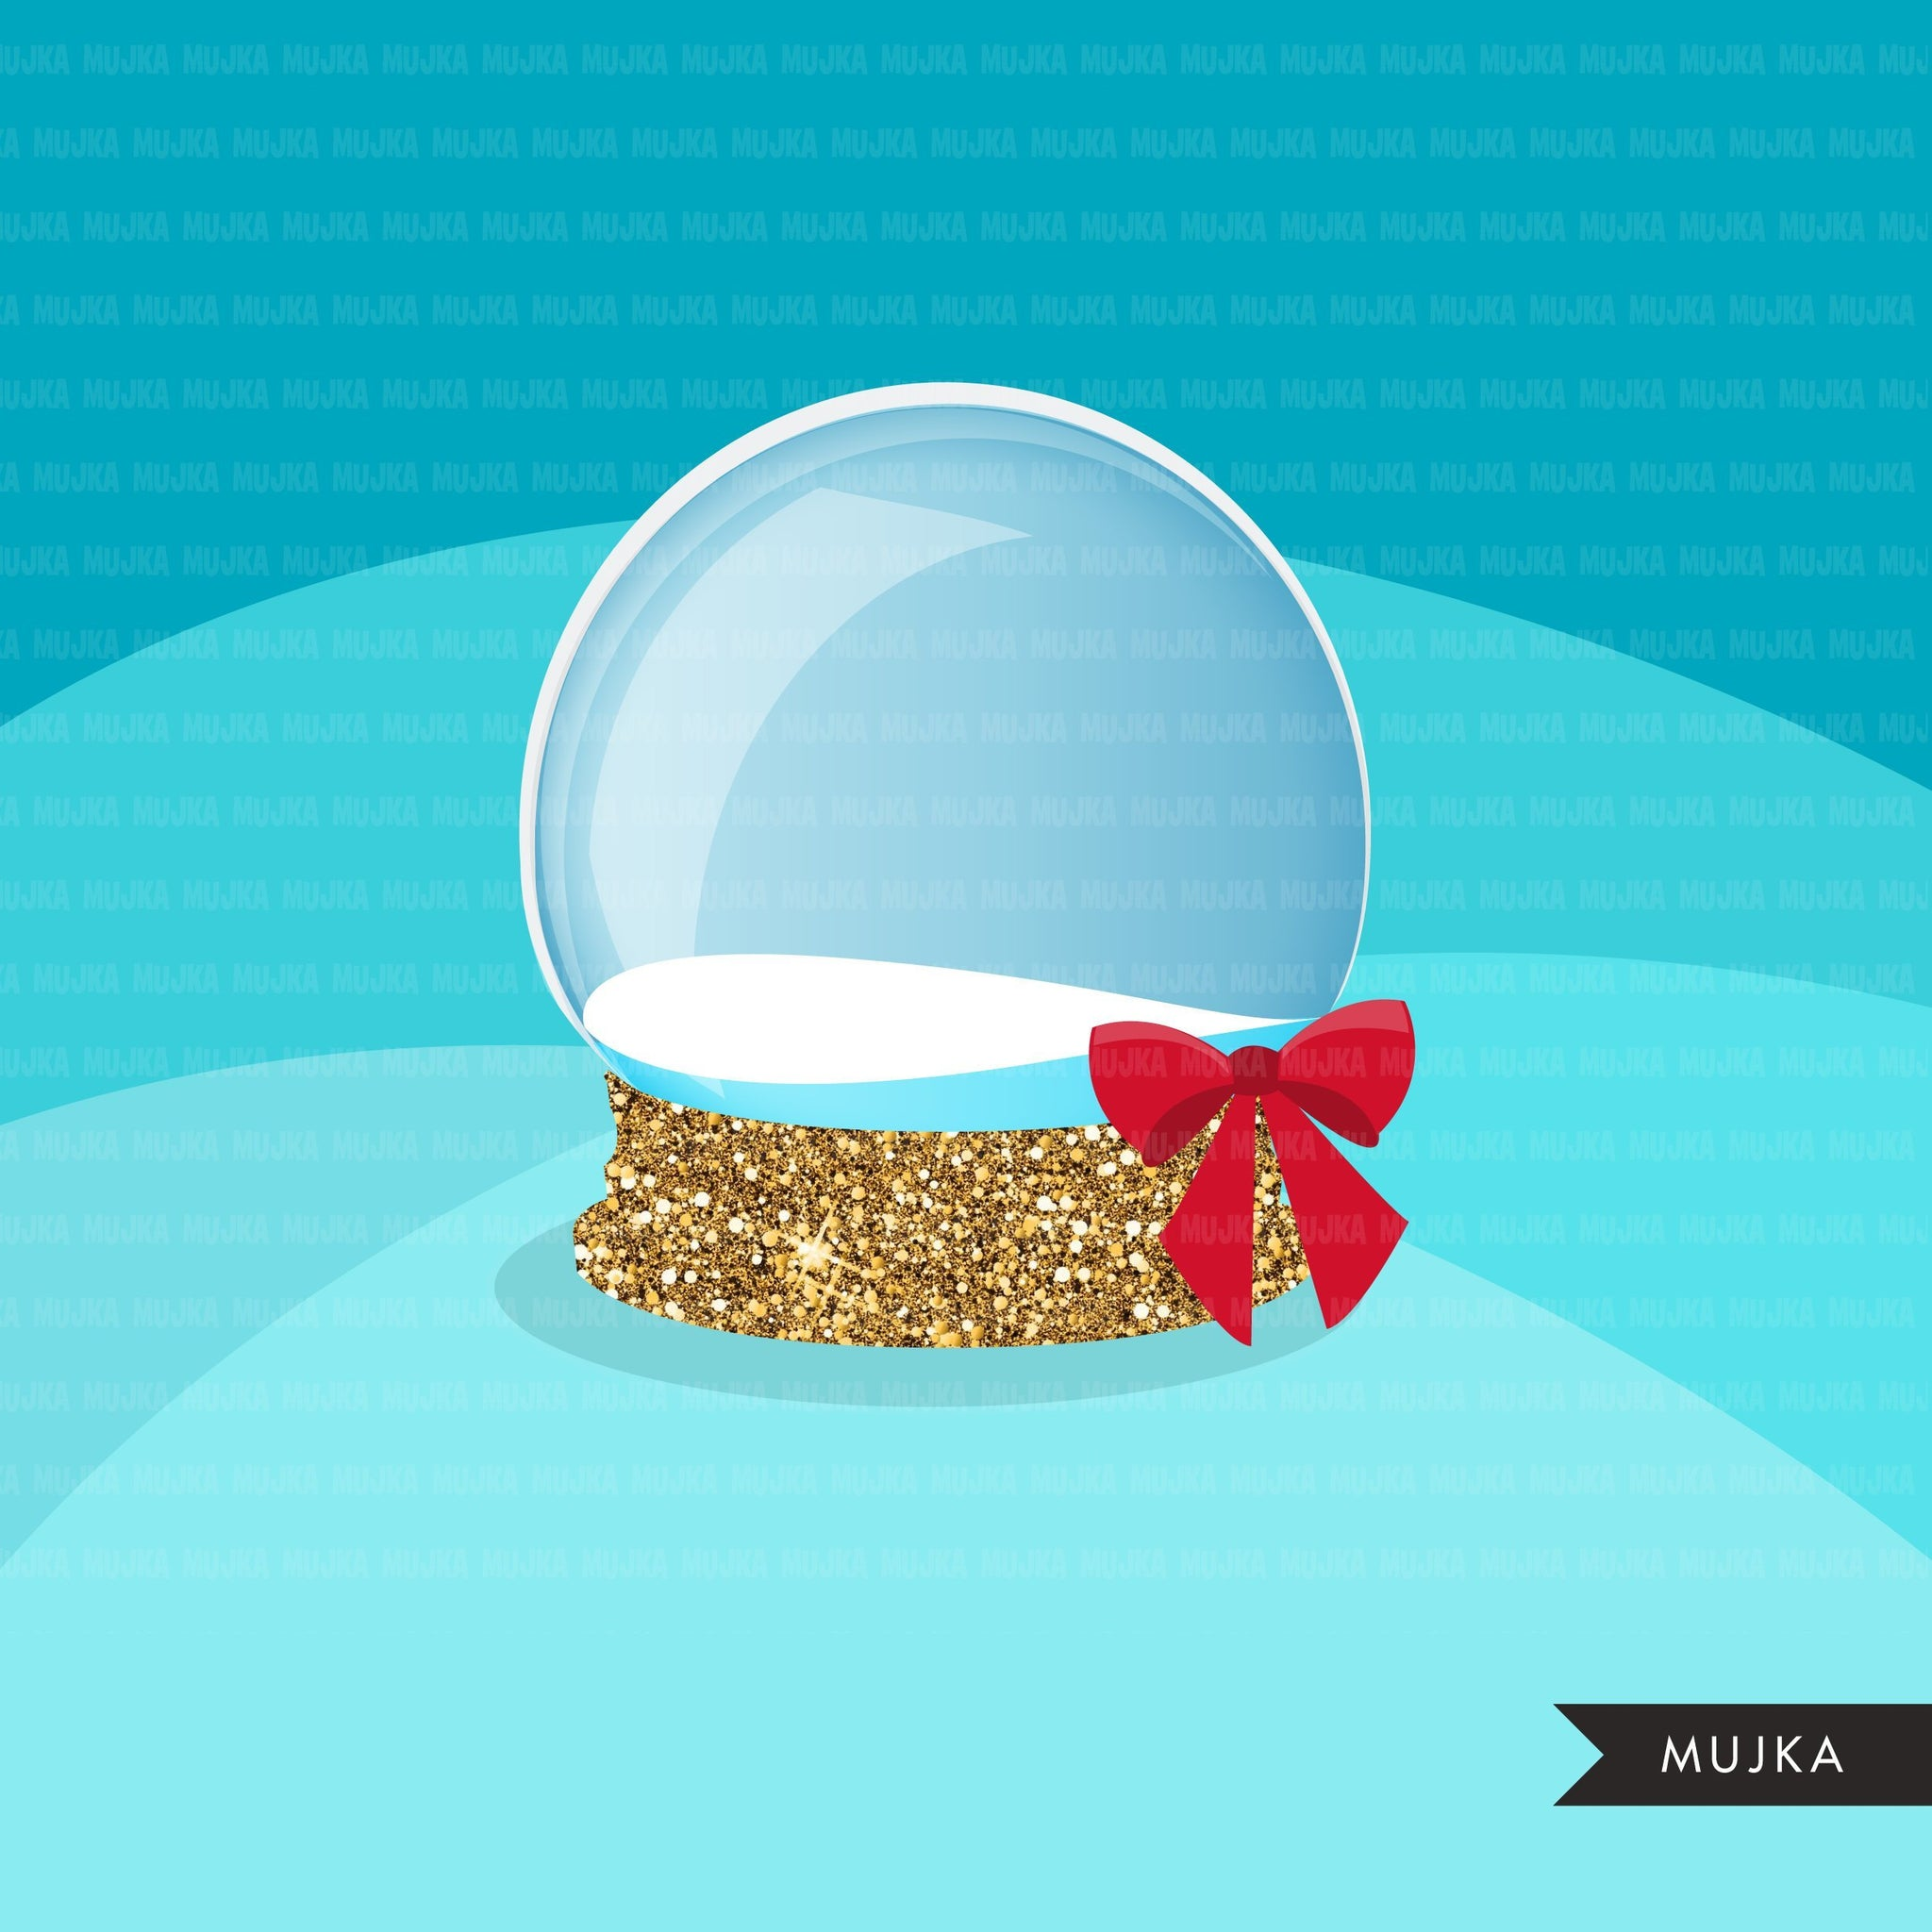 Christmas snow globe clipart winter, snow globe creator, make your own graphic